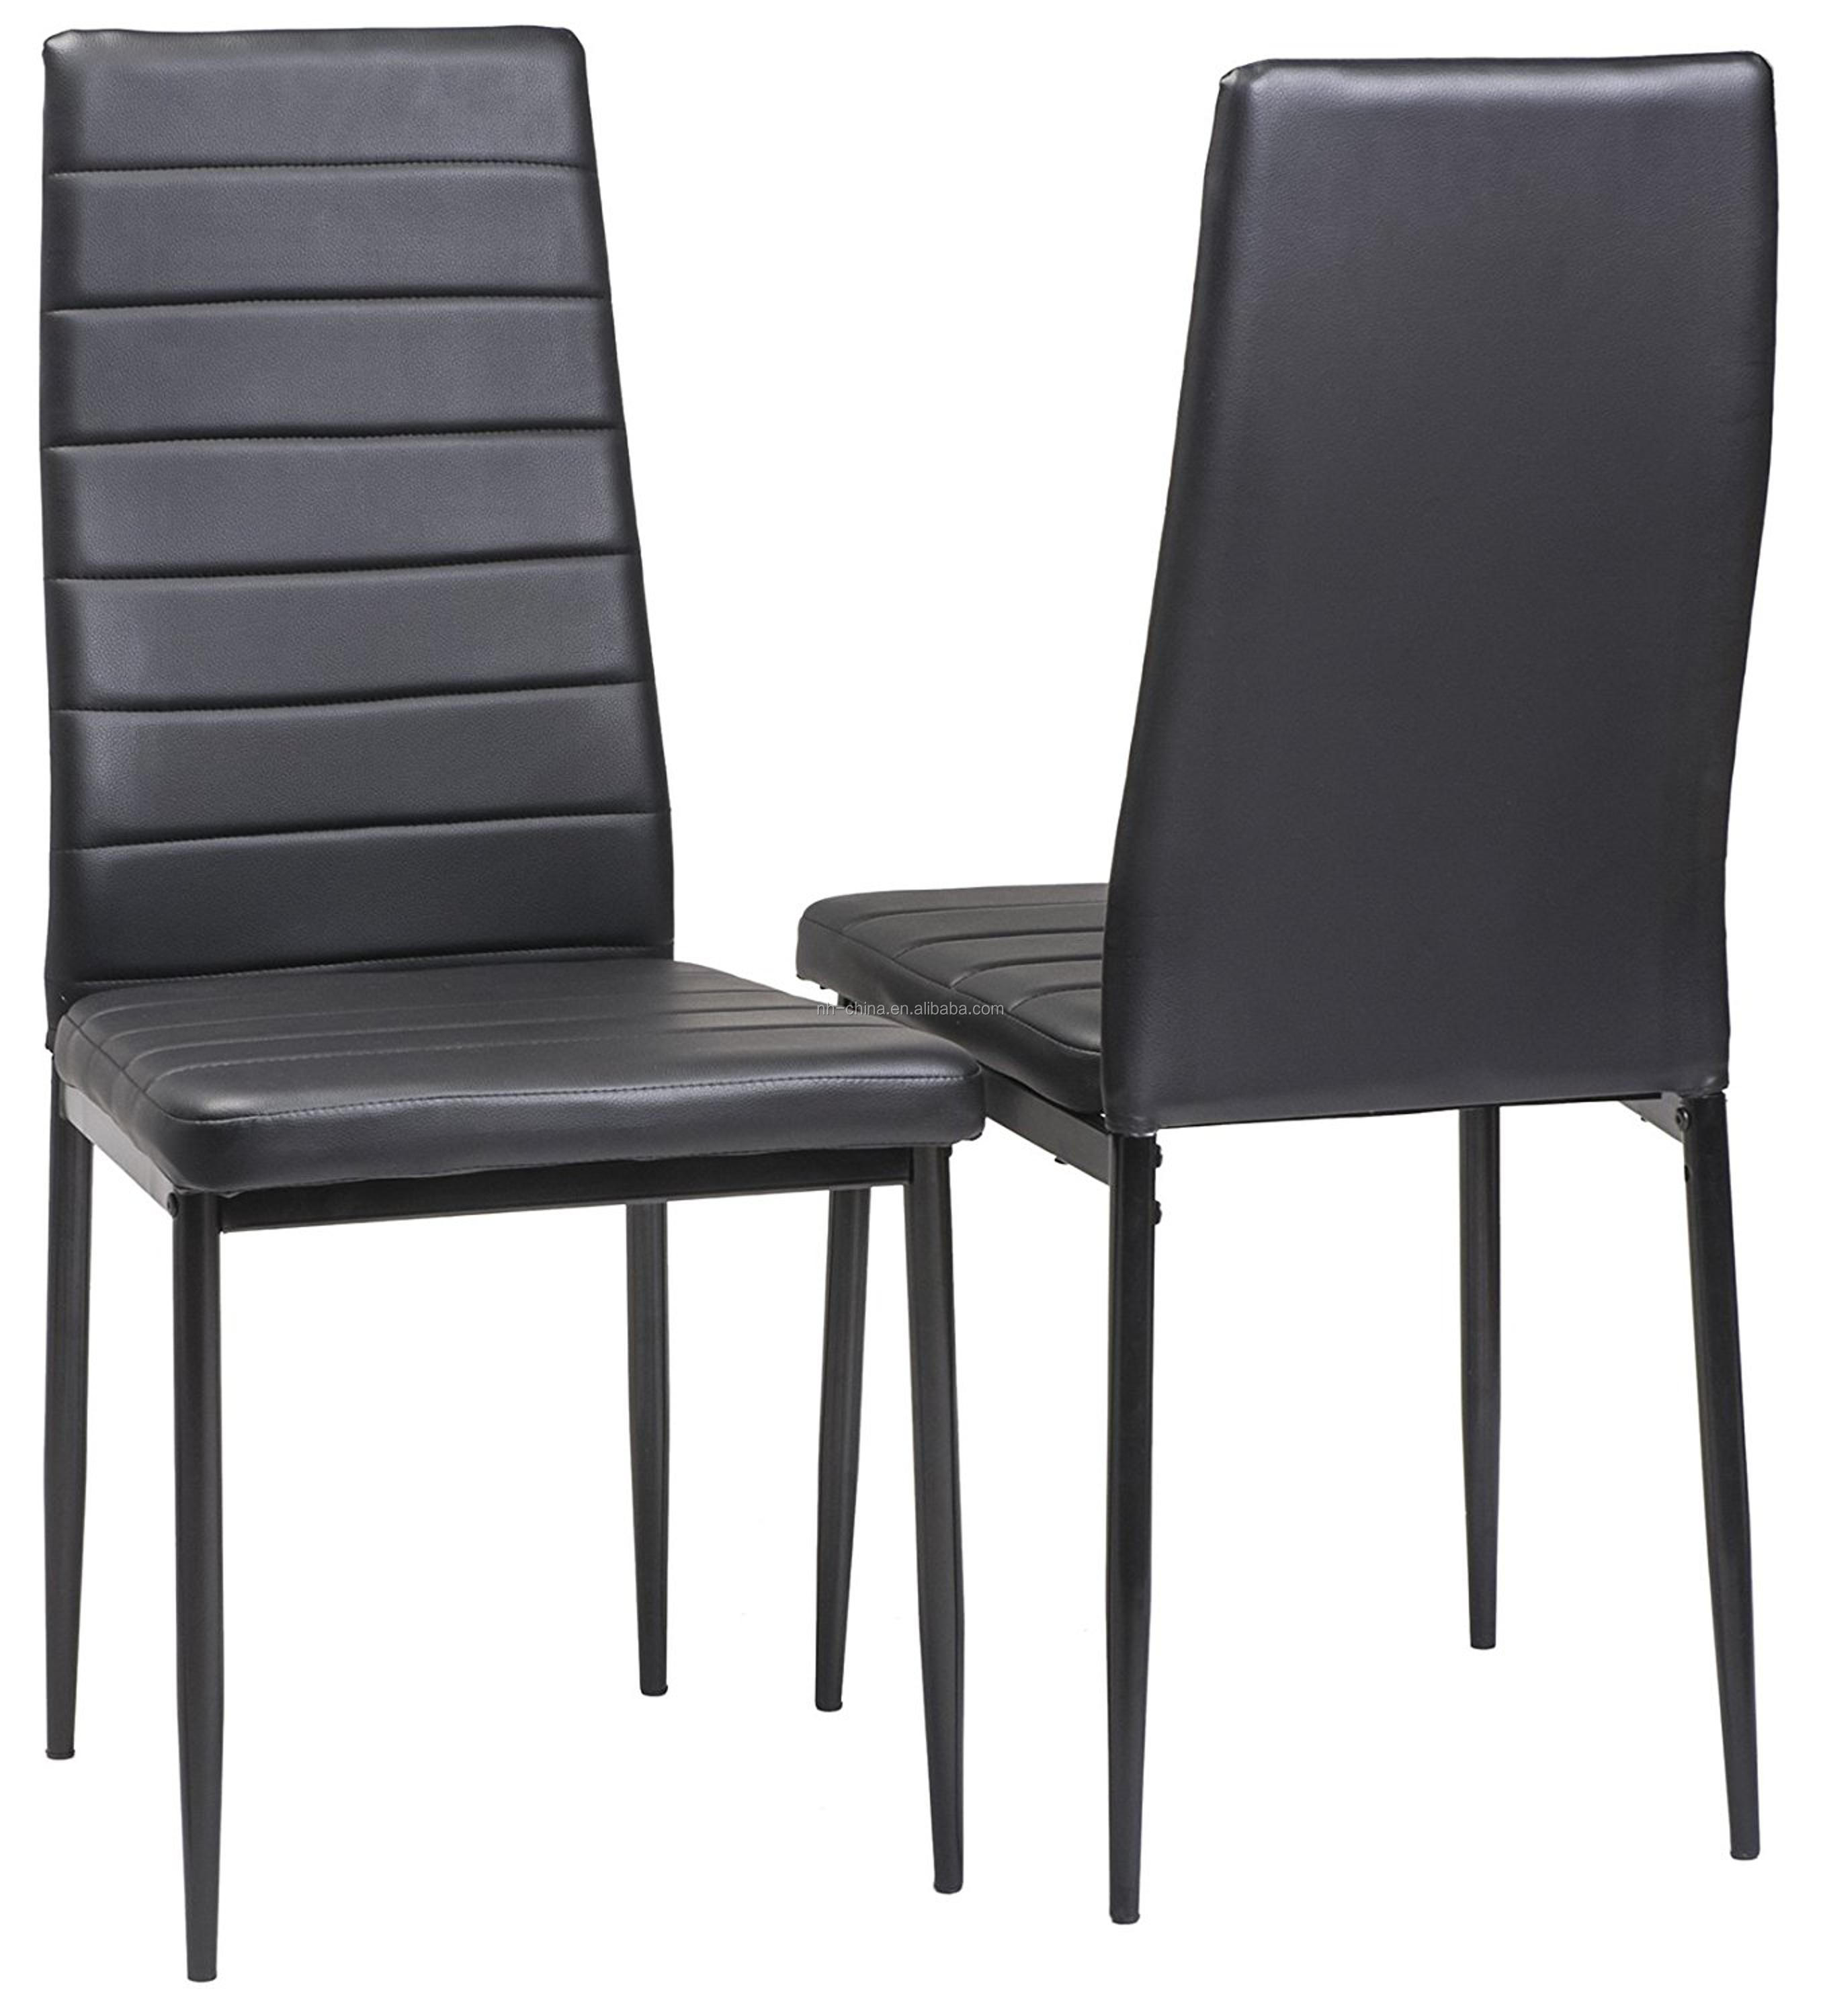 Wholesale High Back Upholstered Leather Dining Chair With ...